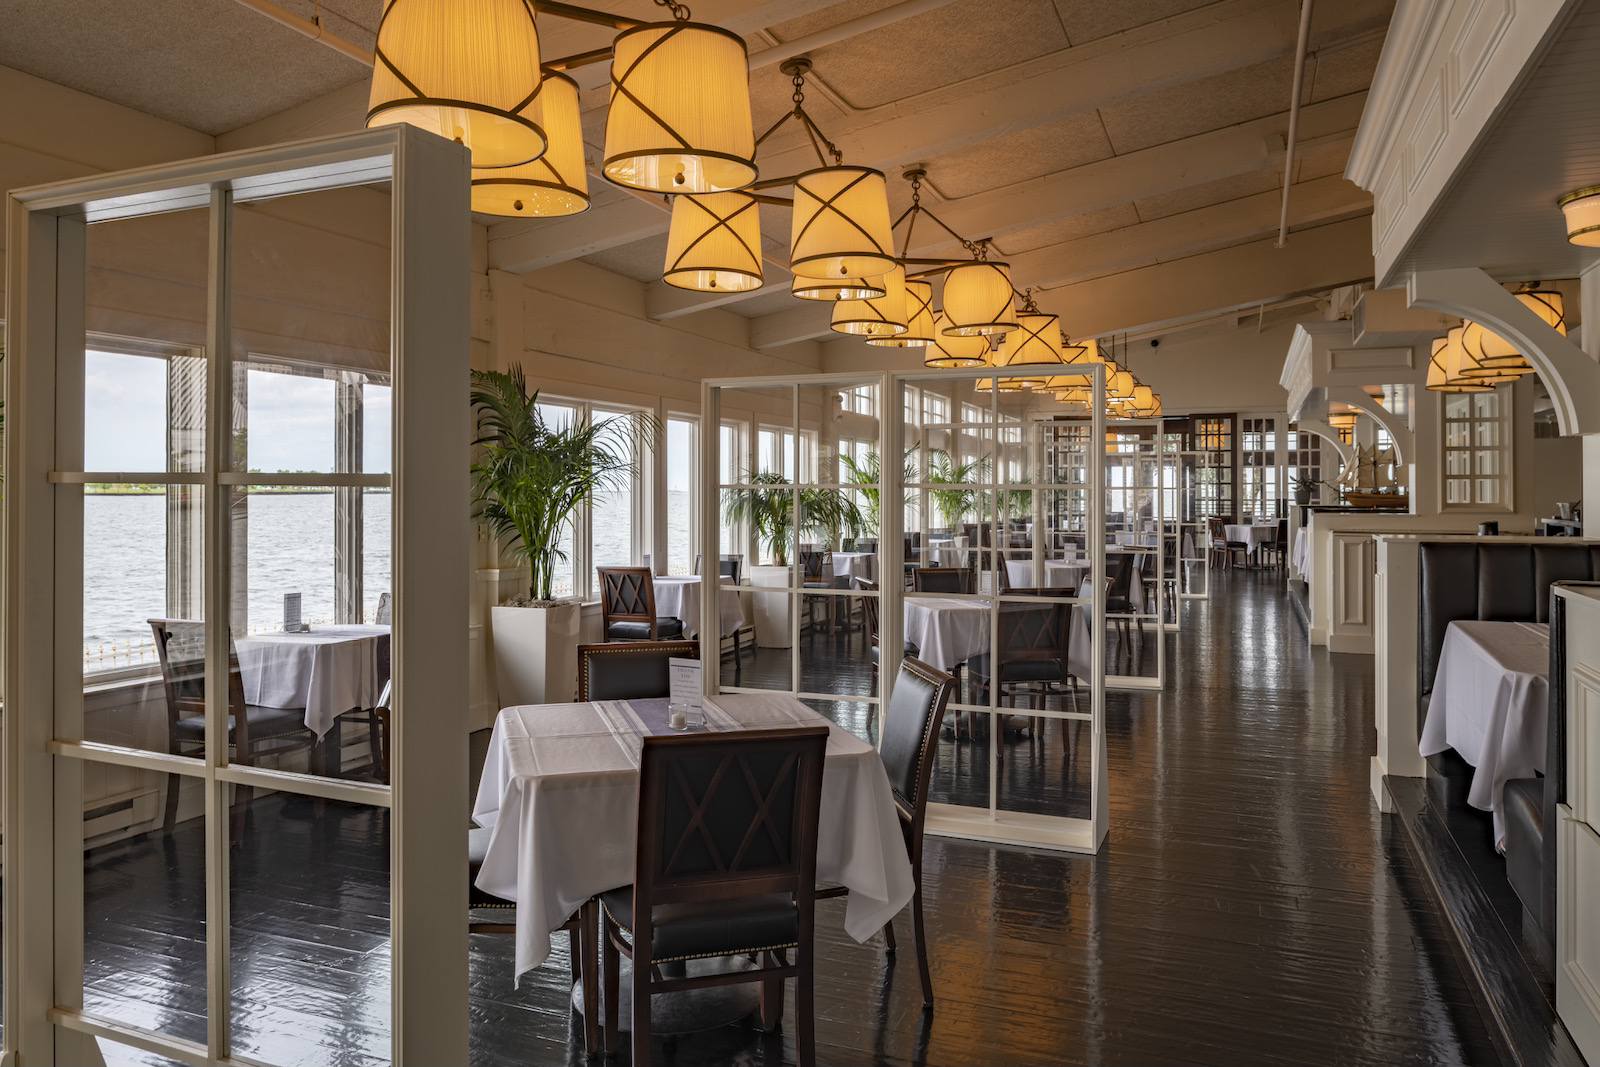 Bartolotta's Harbor House restaurant dining room, ready for safe indoor dining.